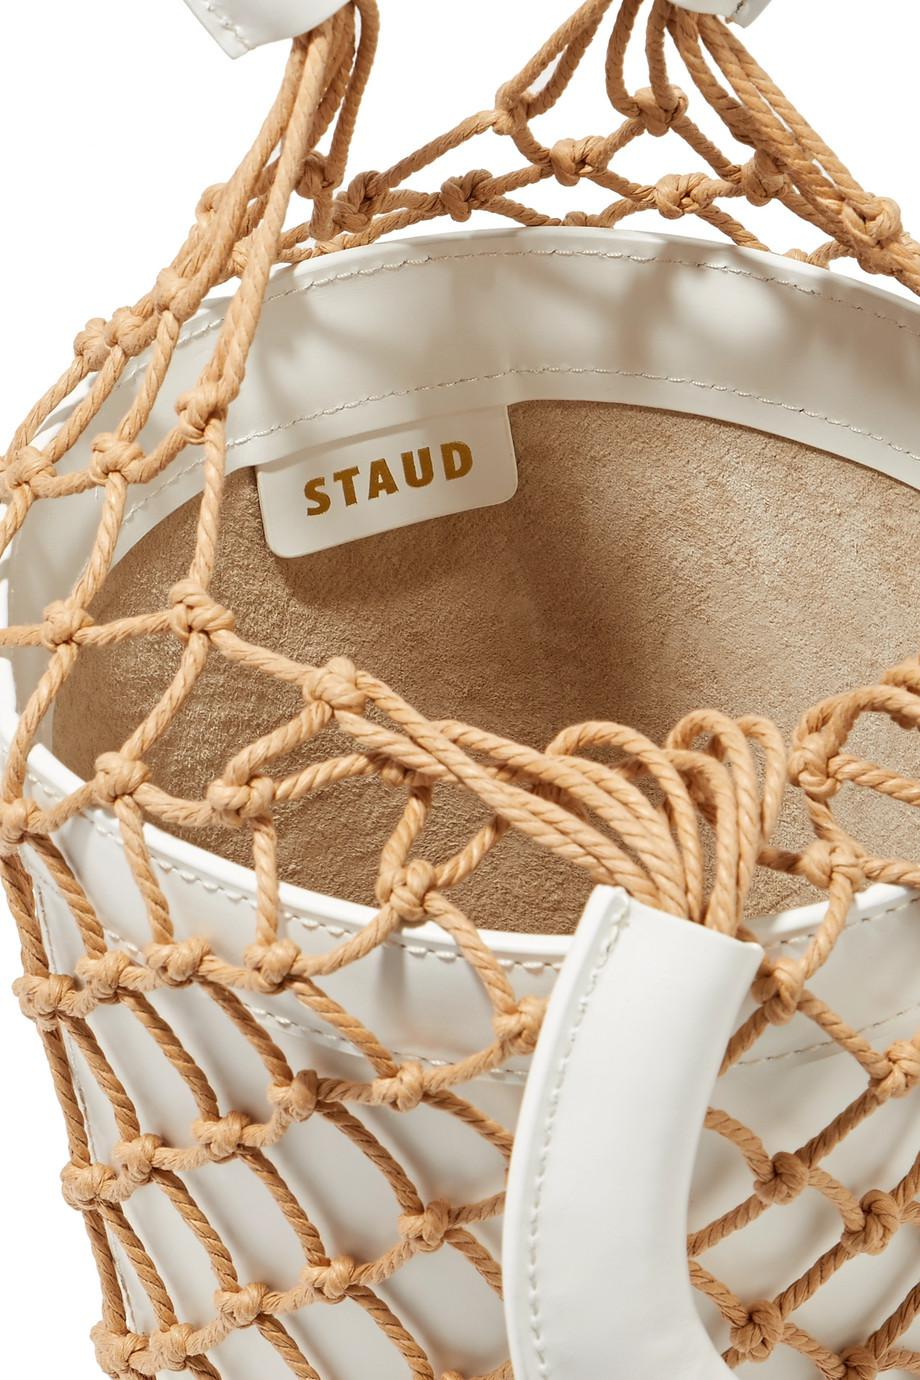 5b60b9a20 STAUD Moreau Macramé And Leather Bucket Bag in White - Lyst